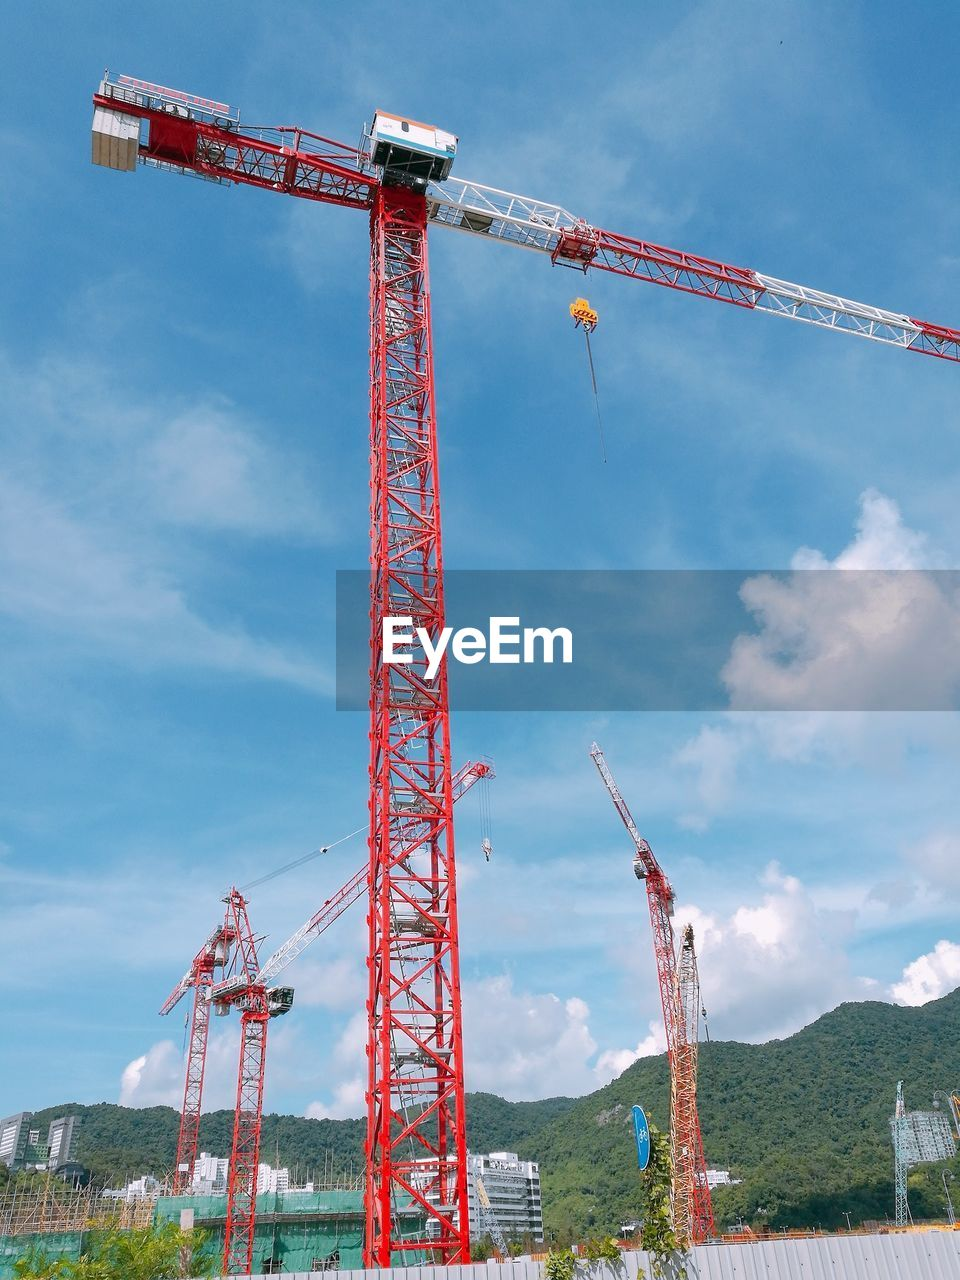 sky, machinery, crane - construction machinery, industry, cloud - sky, construction industry, red, nature, construction site, low angle view, day, architecture, development, tall - high, no people, built structure, metal, outdoors, construction machinery, incomplete, construction equipment